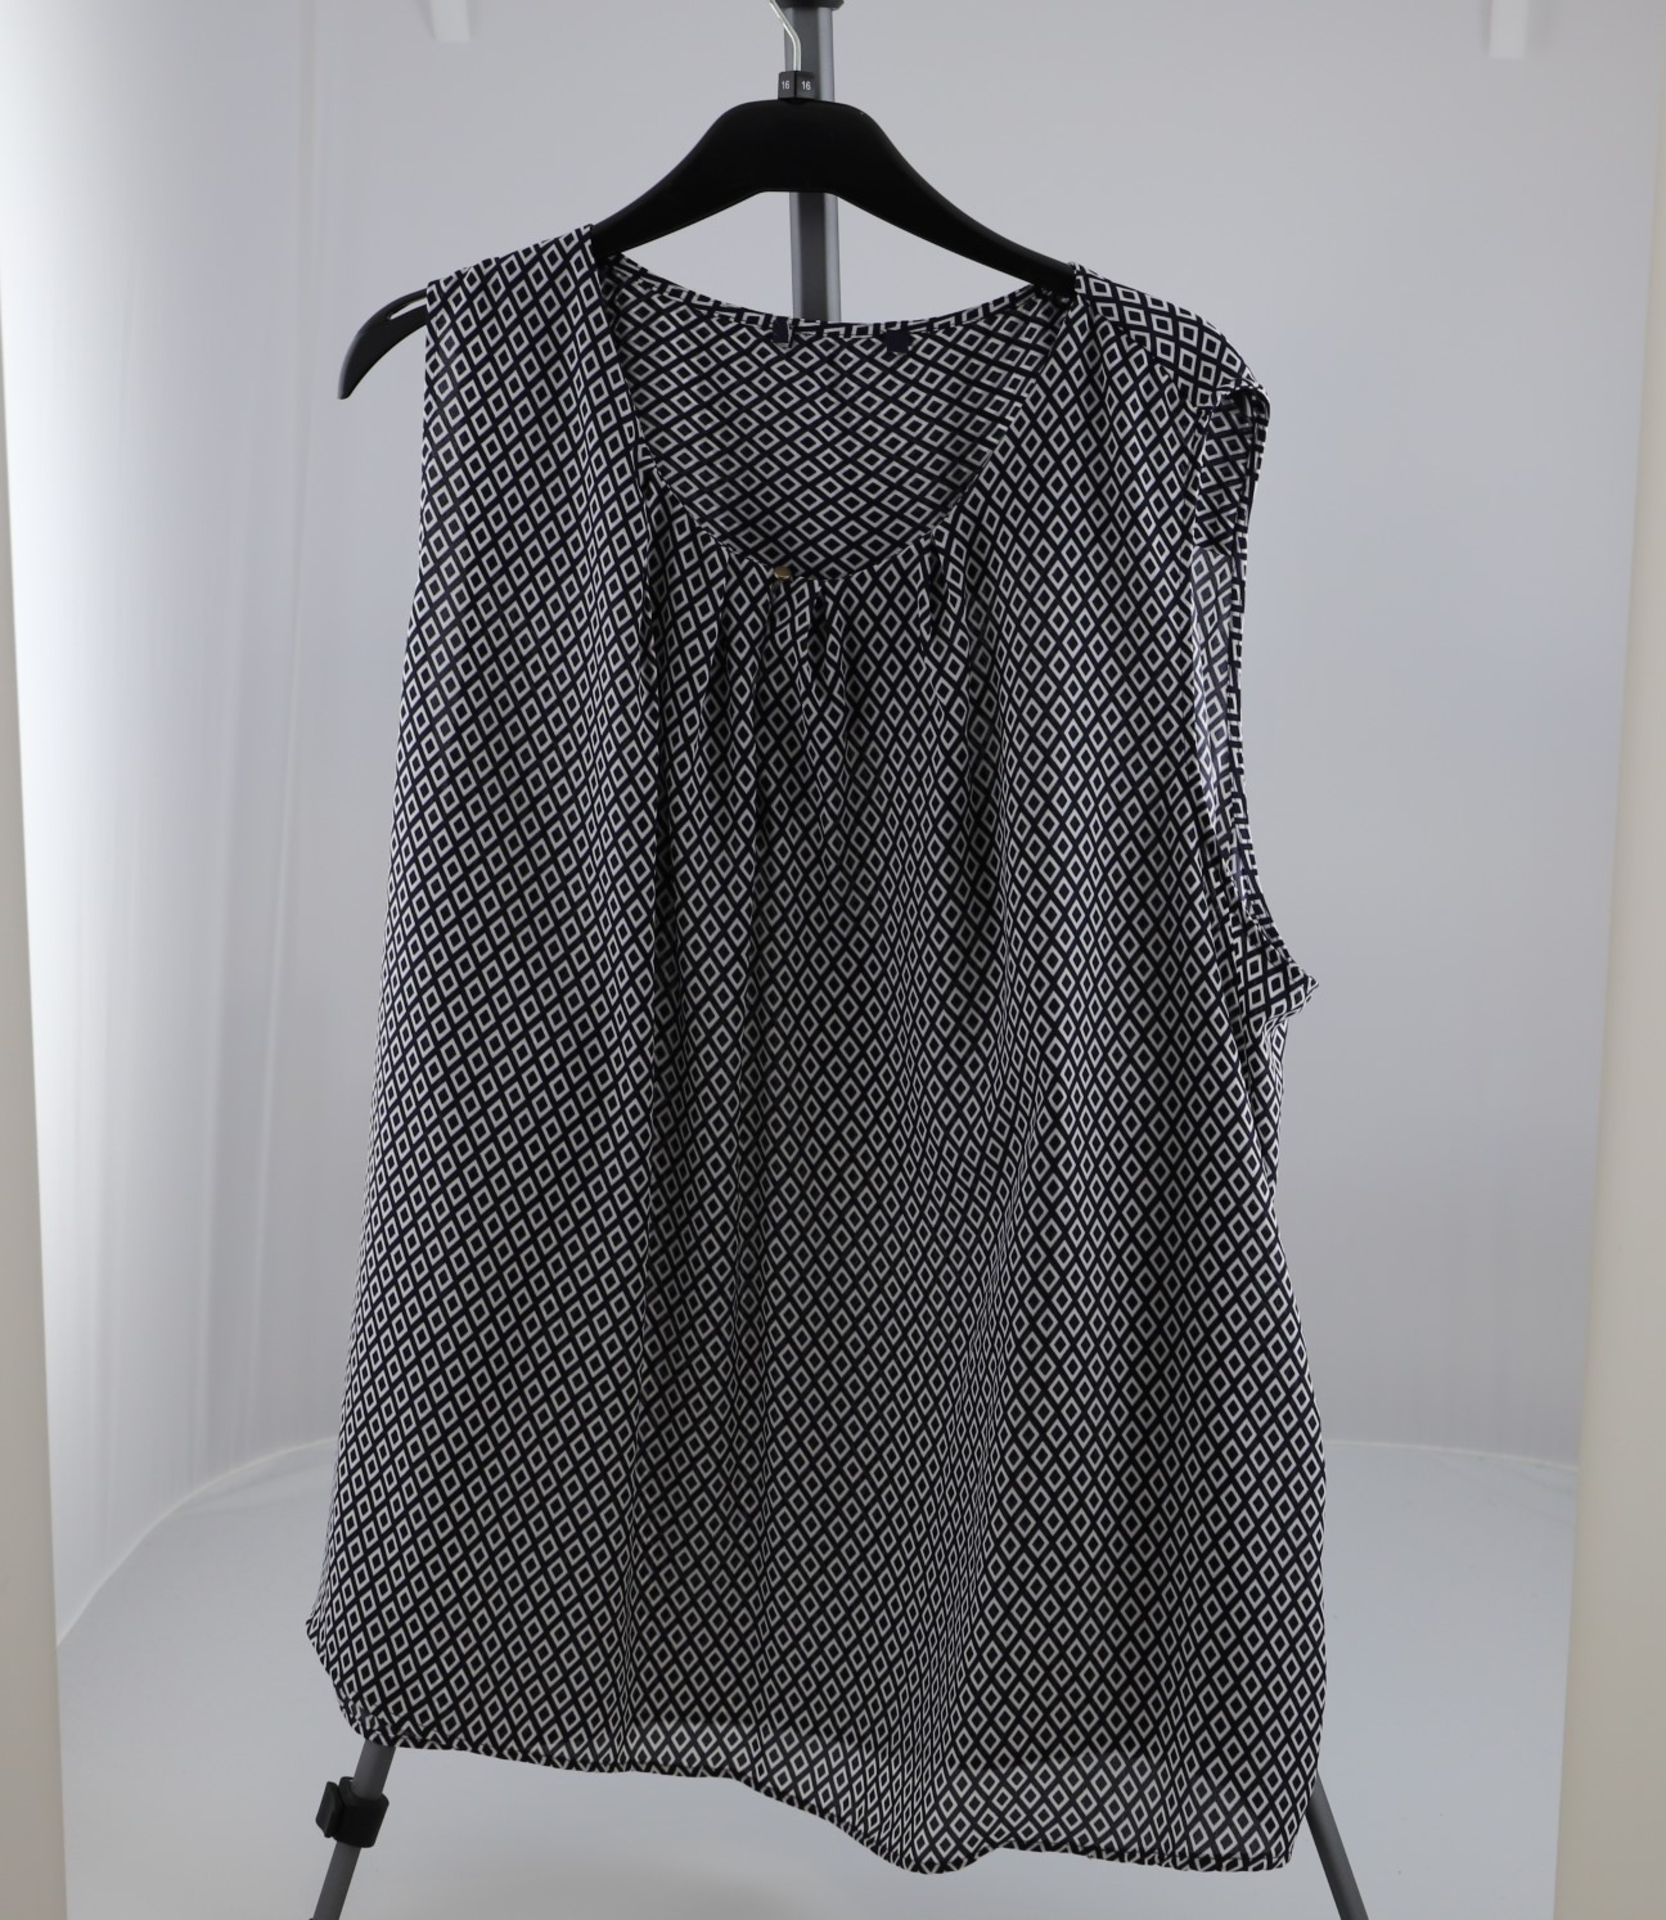 1 x mixed pallet = 220 items of Grade A M&S Womenswear. Approx Total RRP £6612.50 - Image 5 of 8